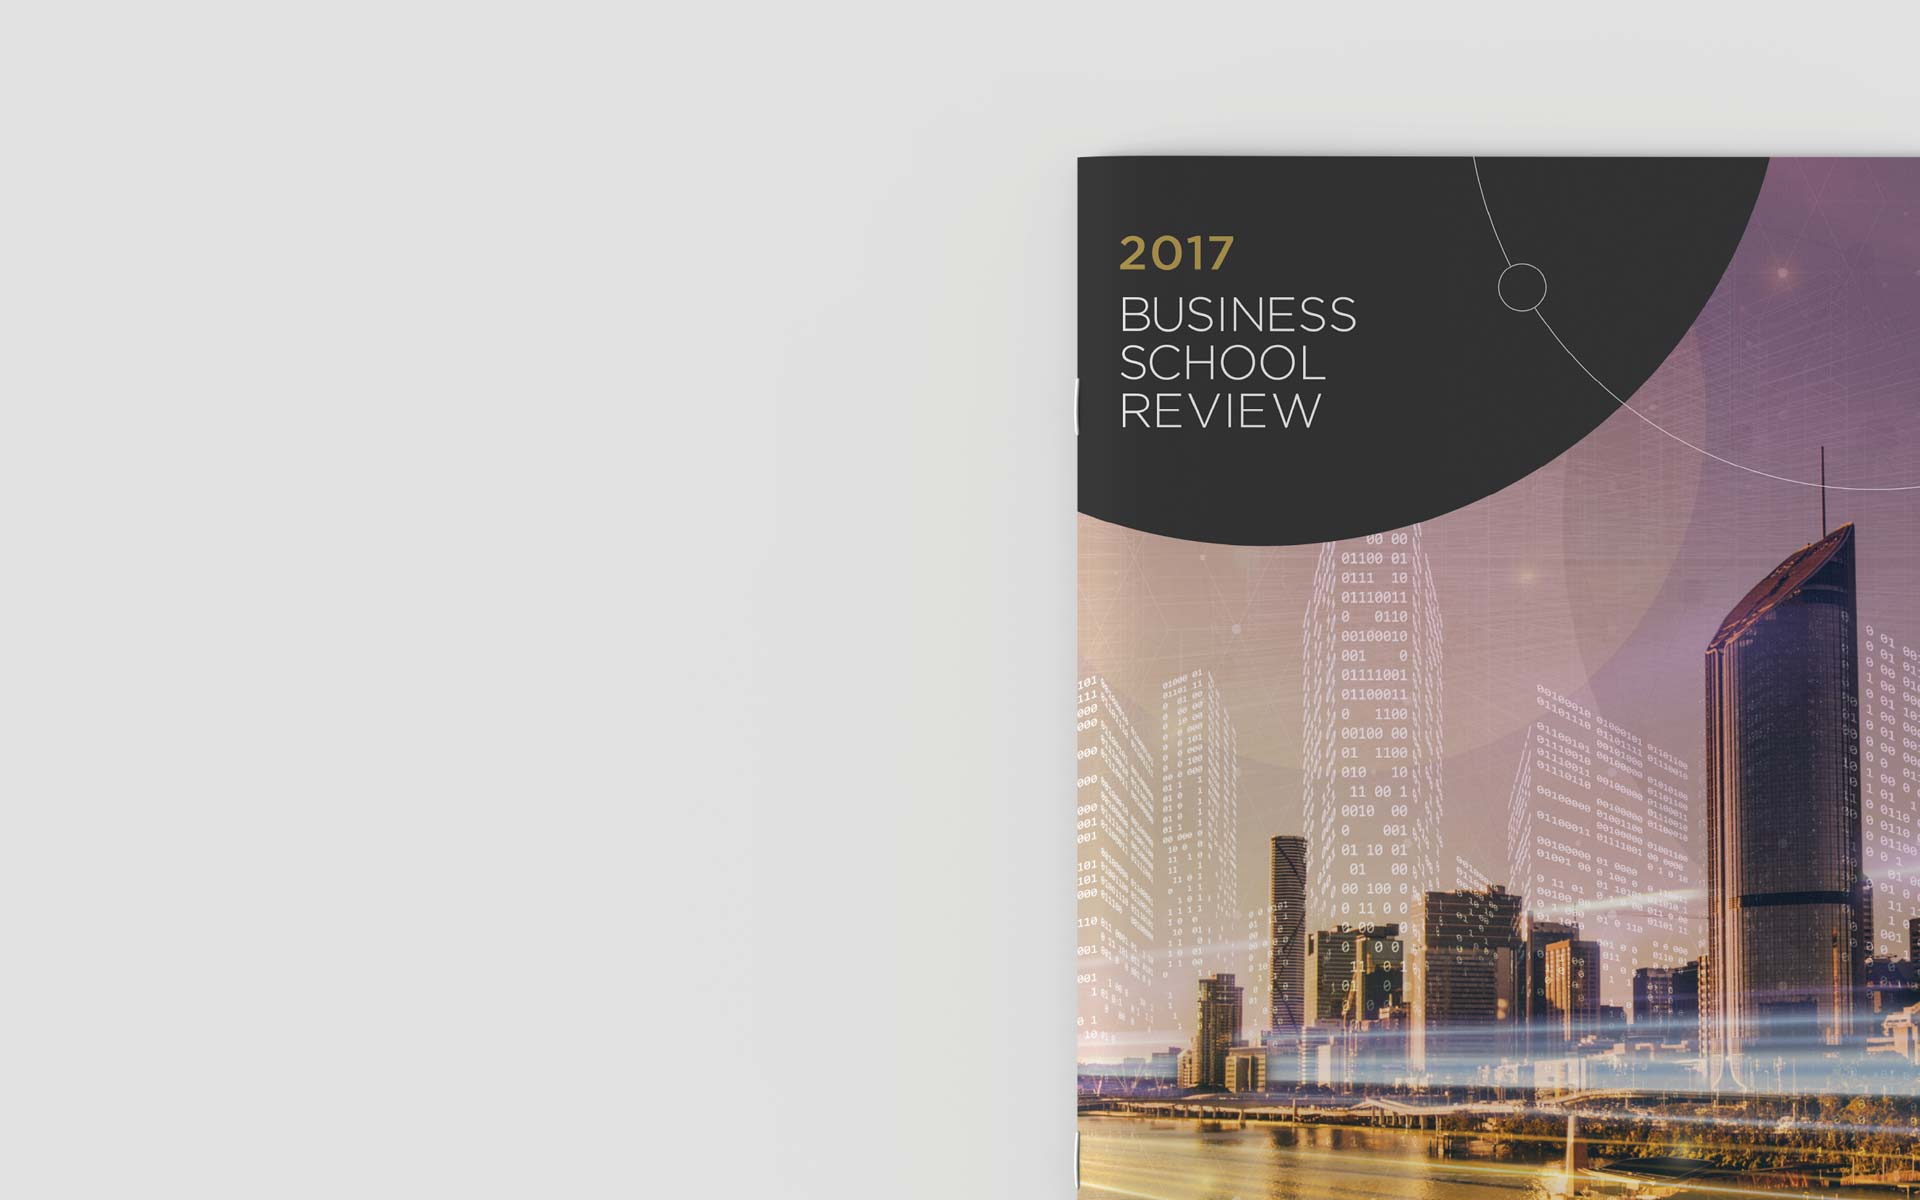 UQ Infographic Design Business Review Document Design